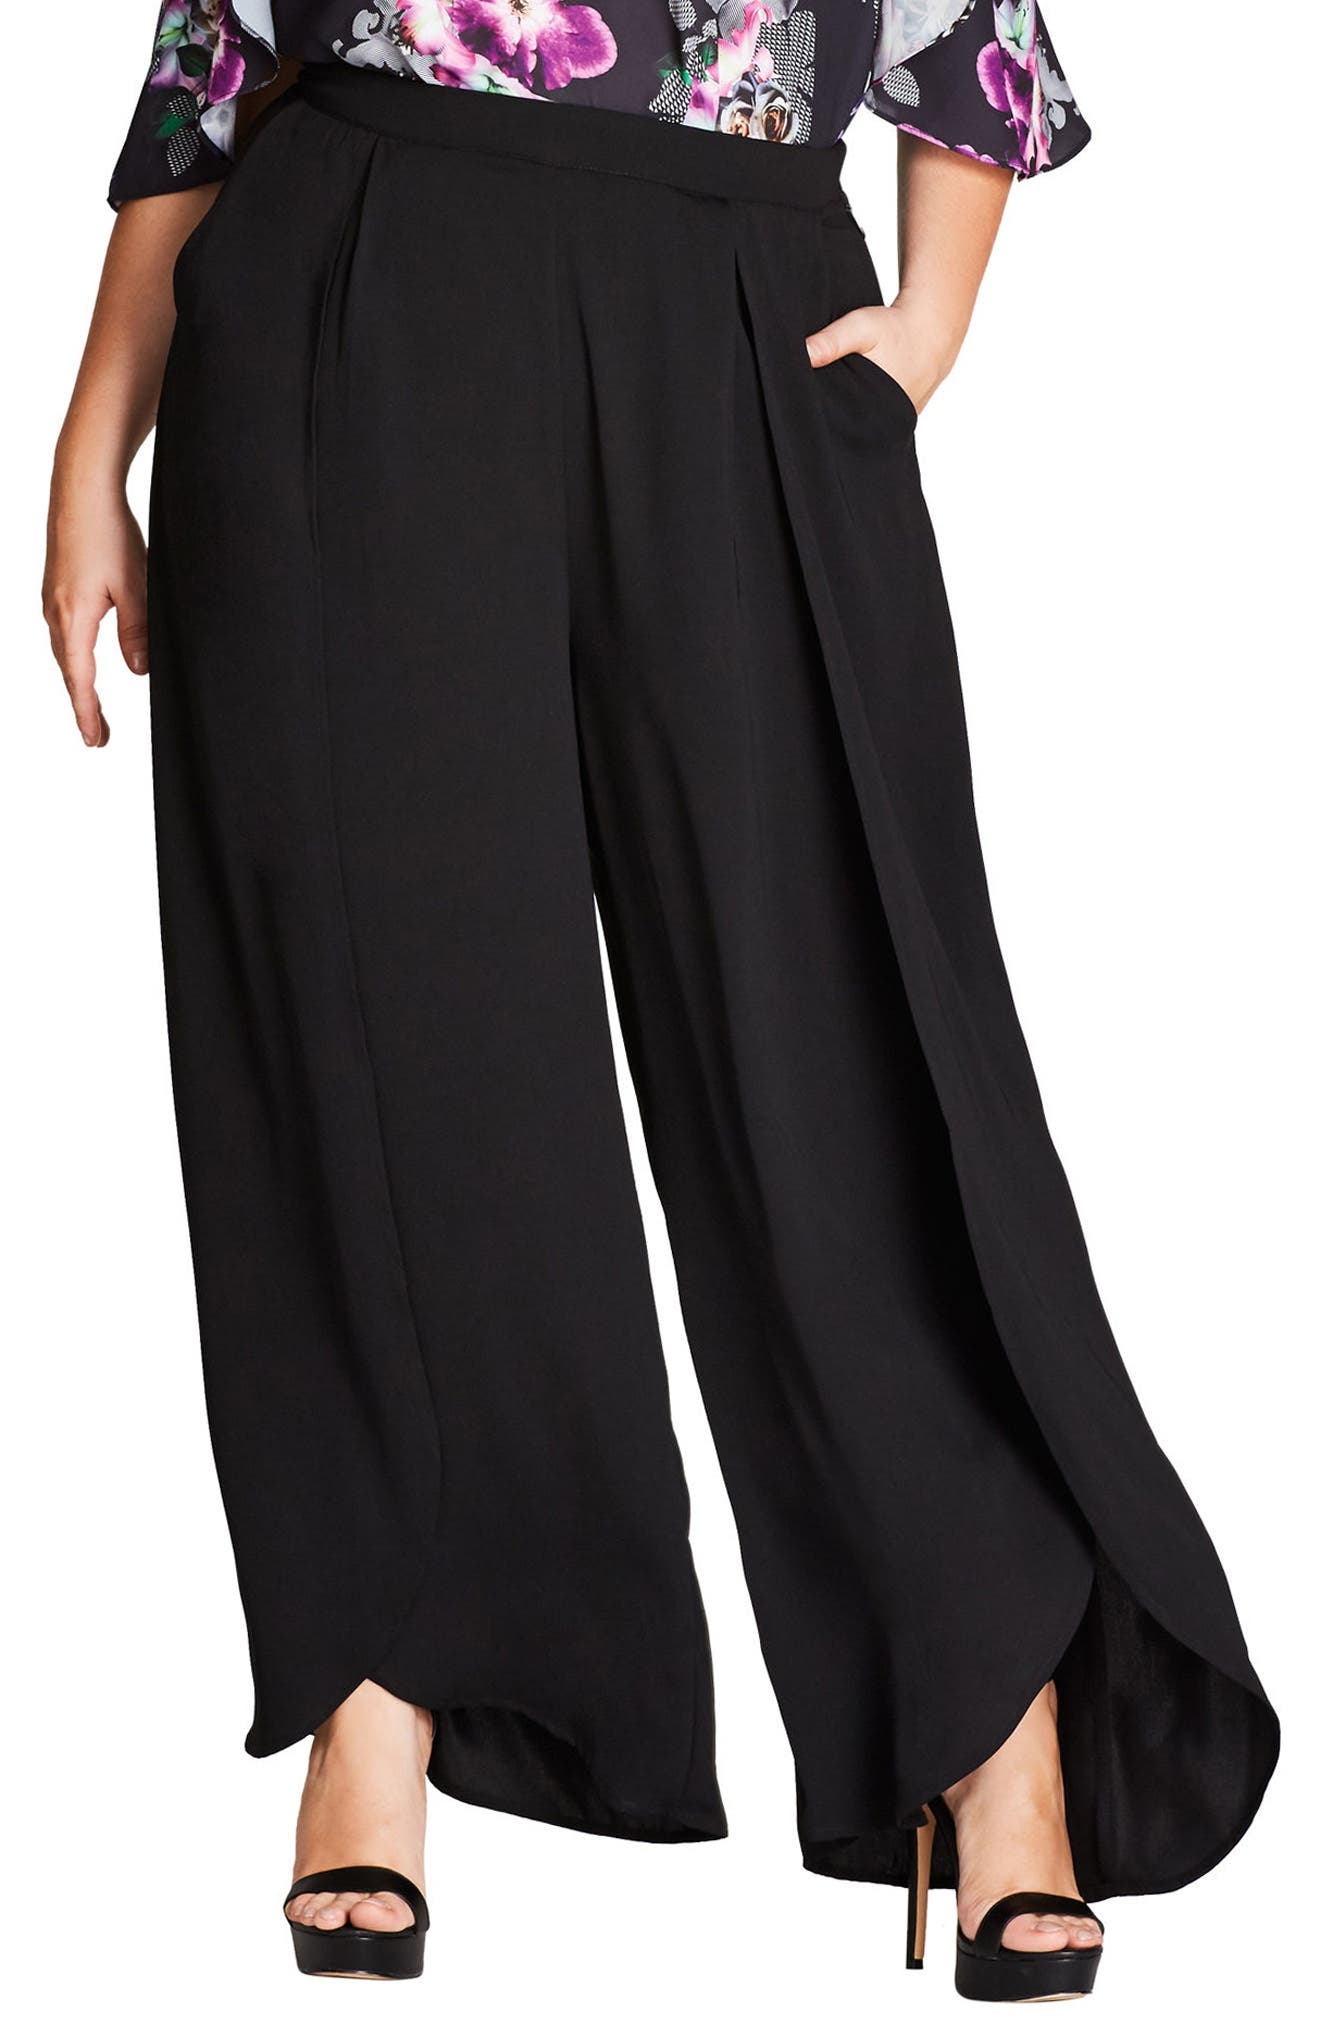 Alternate Image 1 Selected - City Chic Split Front Wide Leg Pants (Plus Size)